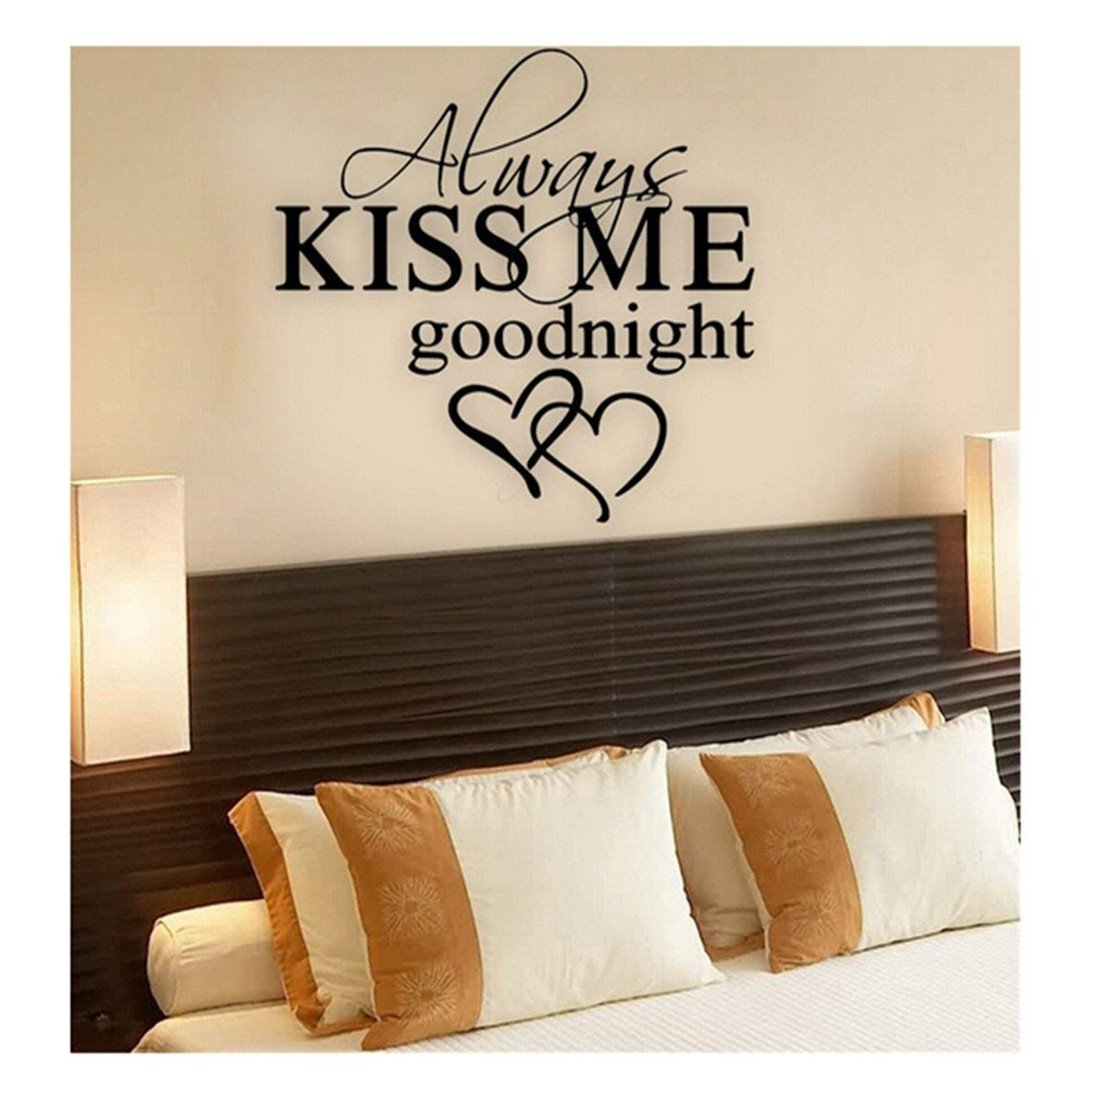 Edtoy ALWAYS KISS ME GOODNIGHT LOVE Wall Quote Sticker Art Decal Vinyl Baby Room Decor Mural by Edtoy (Image #2)